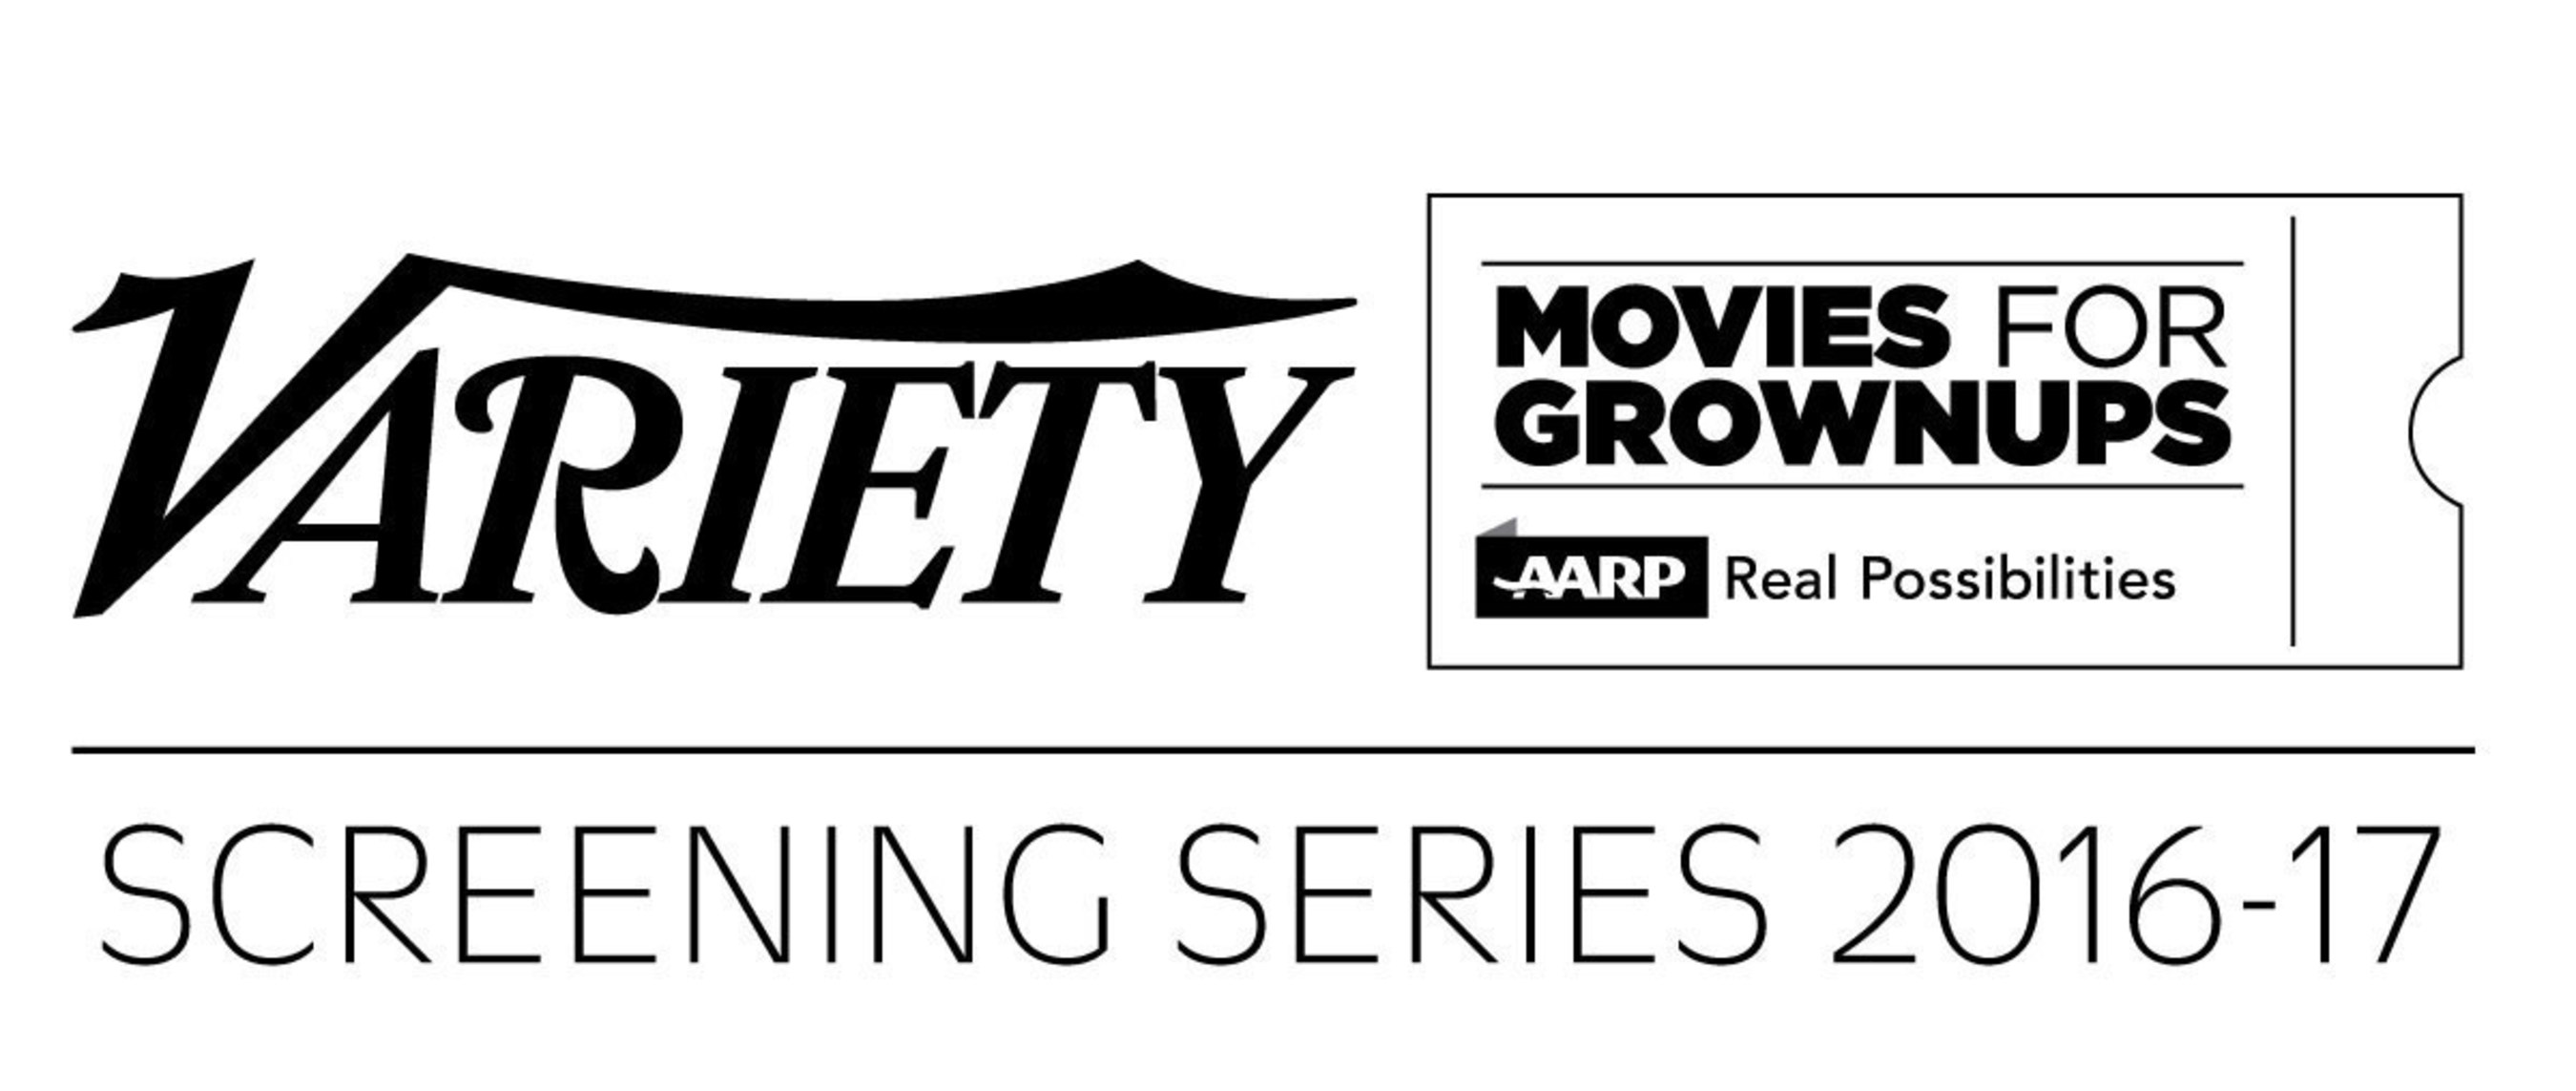 Variety And AARP Movies For Grownups' Announce The Return Of Annual Screening Series